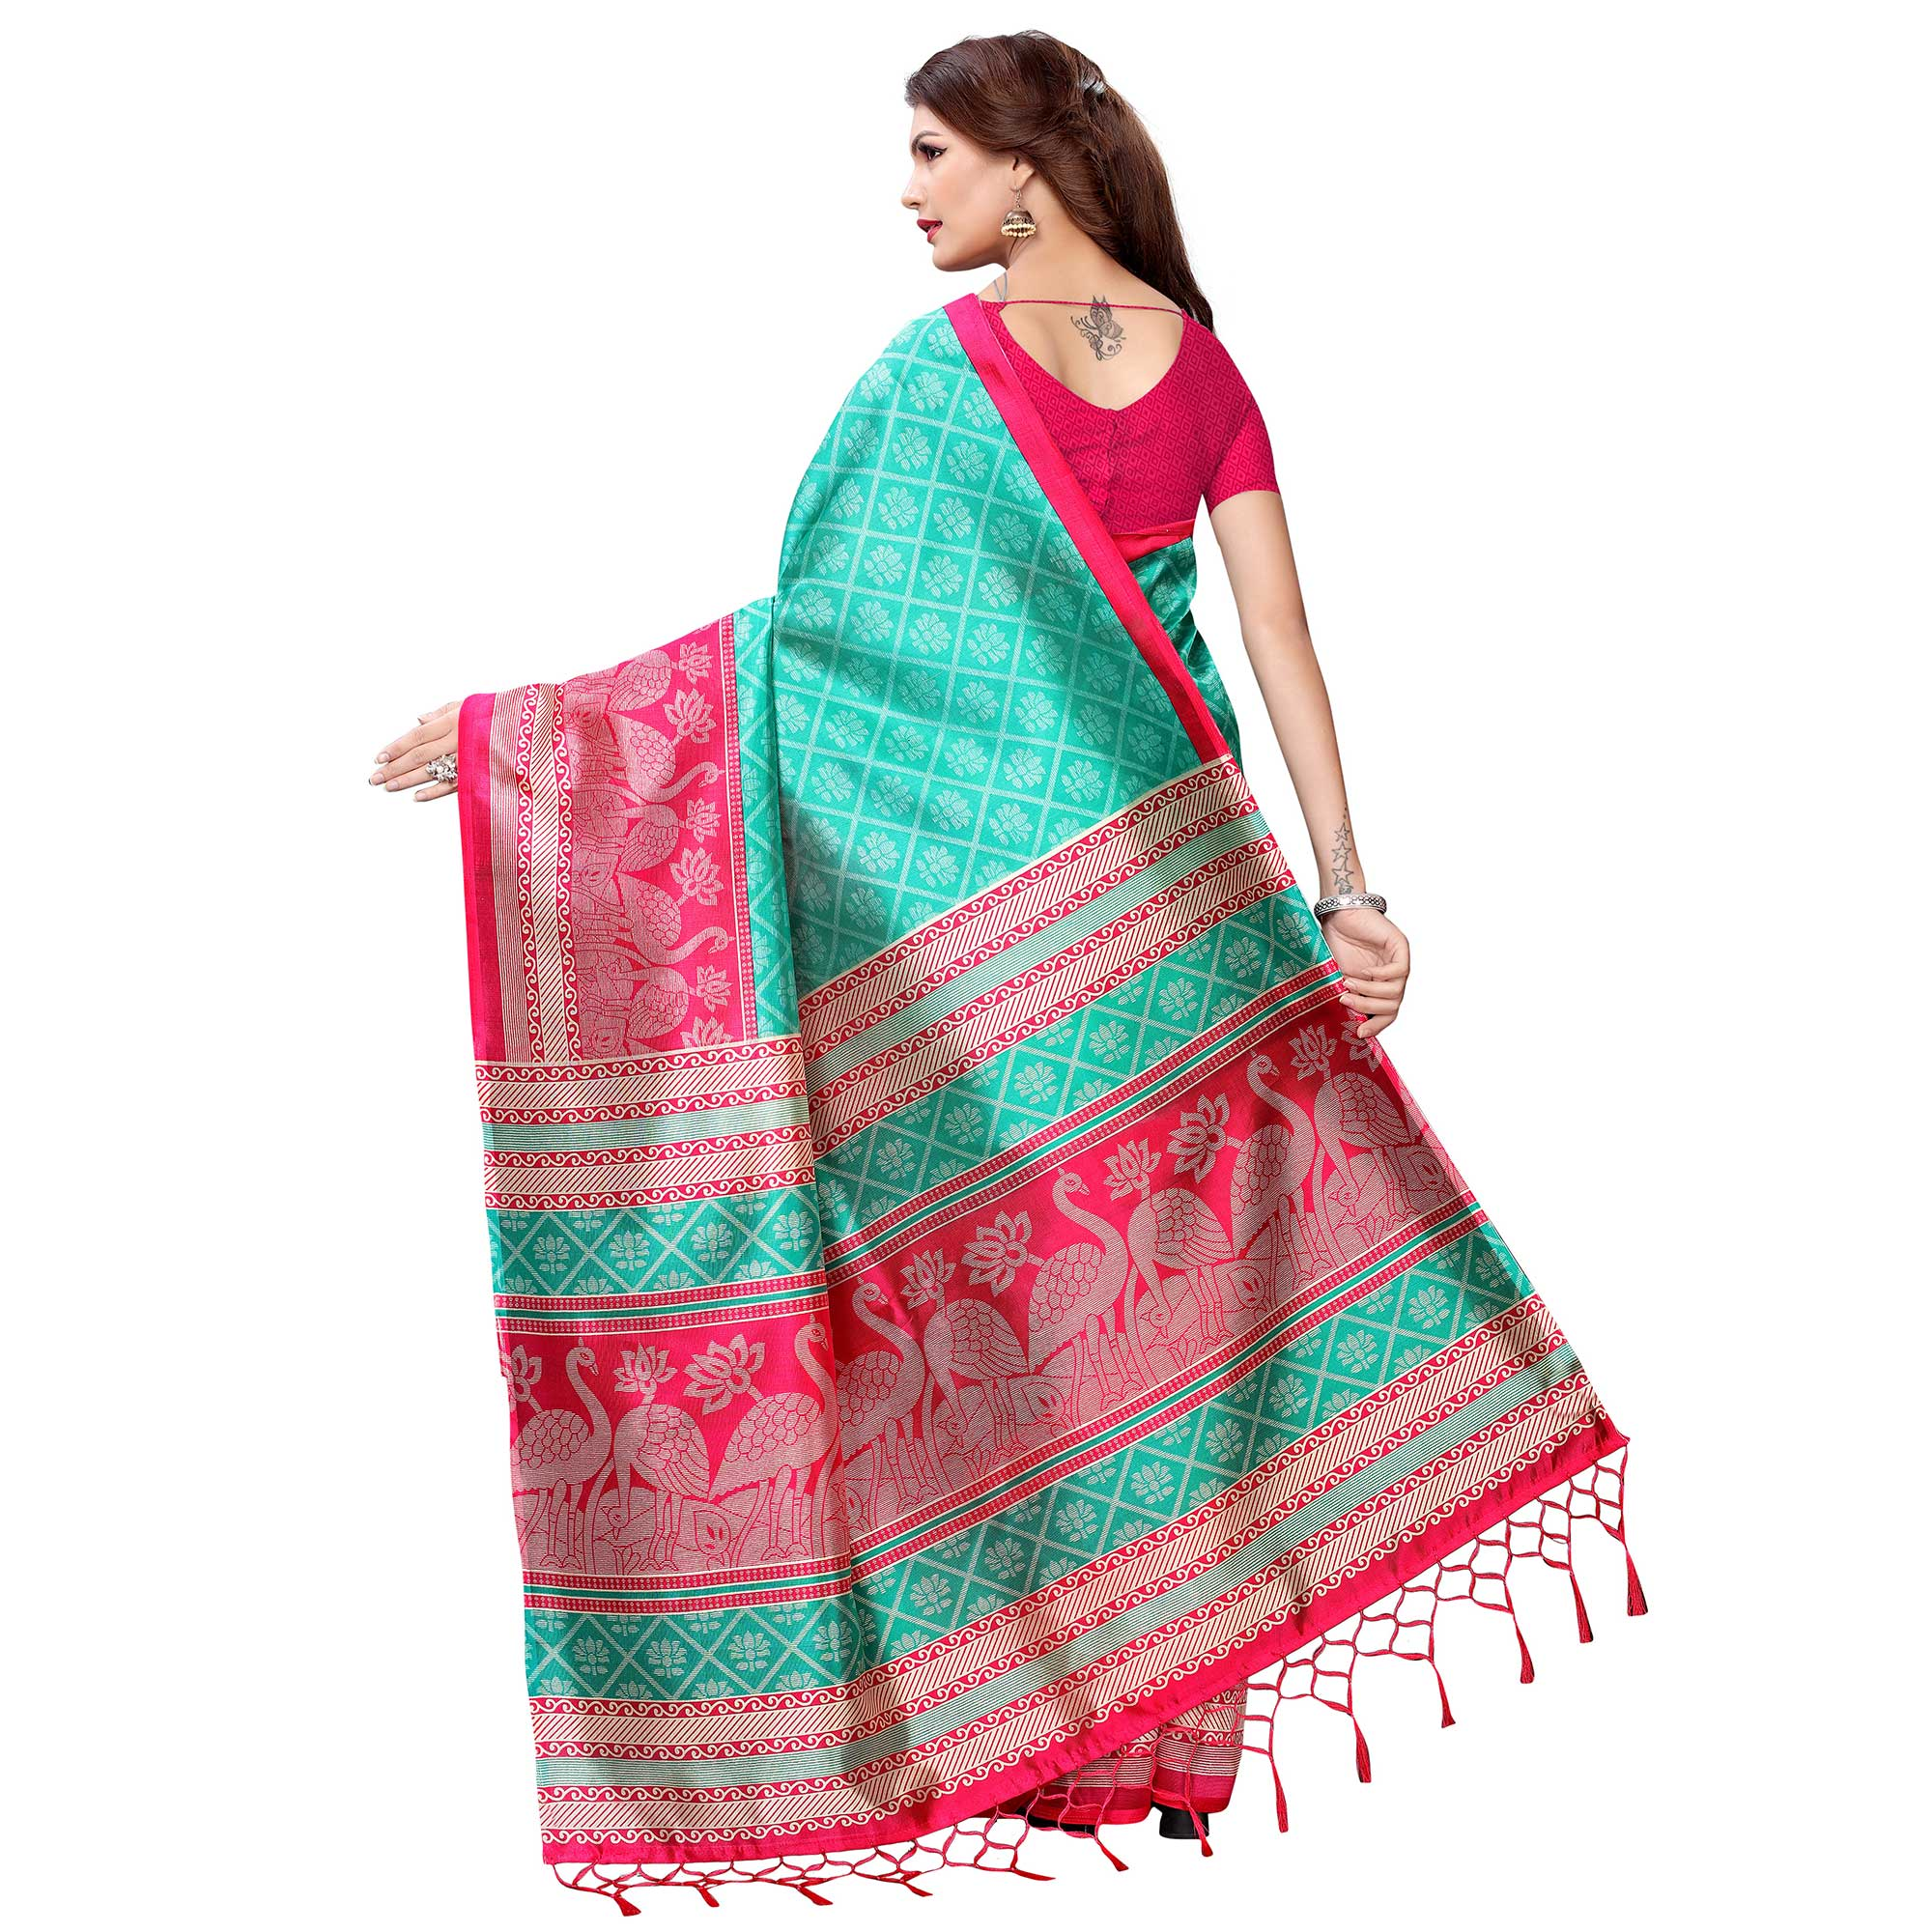 Captivating Turquoise Green Colored Festive Wear Printed Art Silk Saree